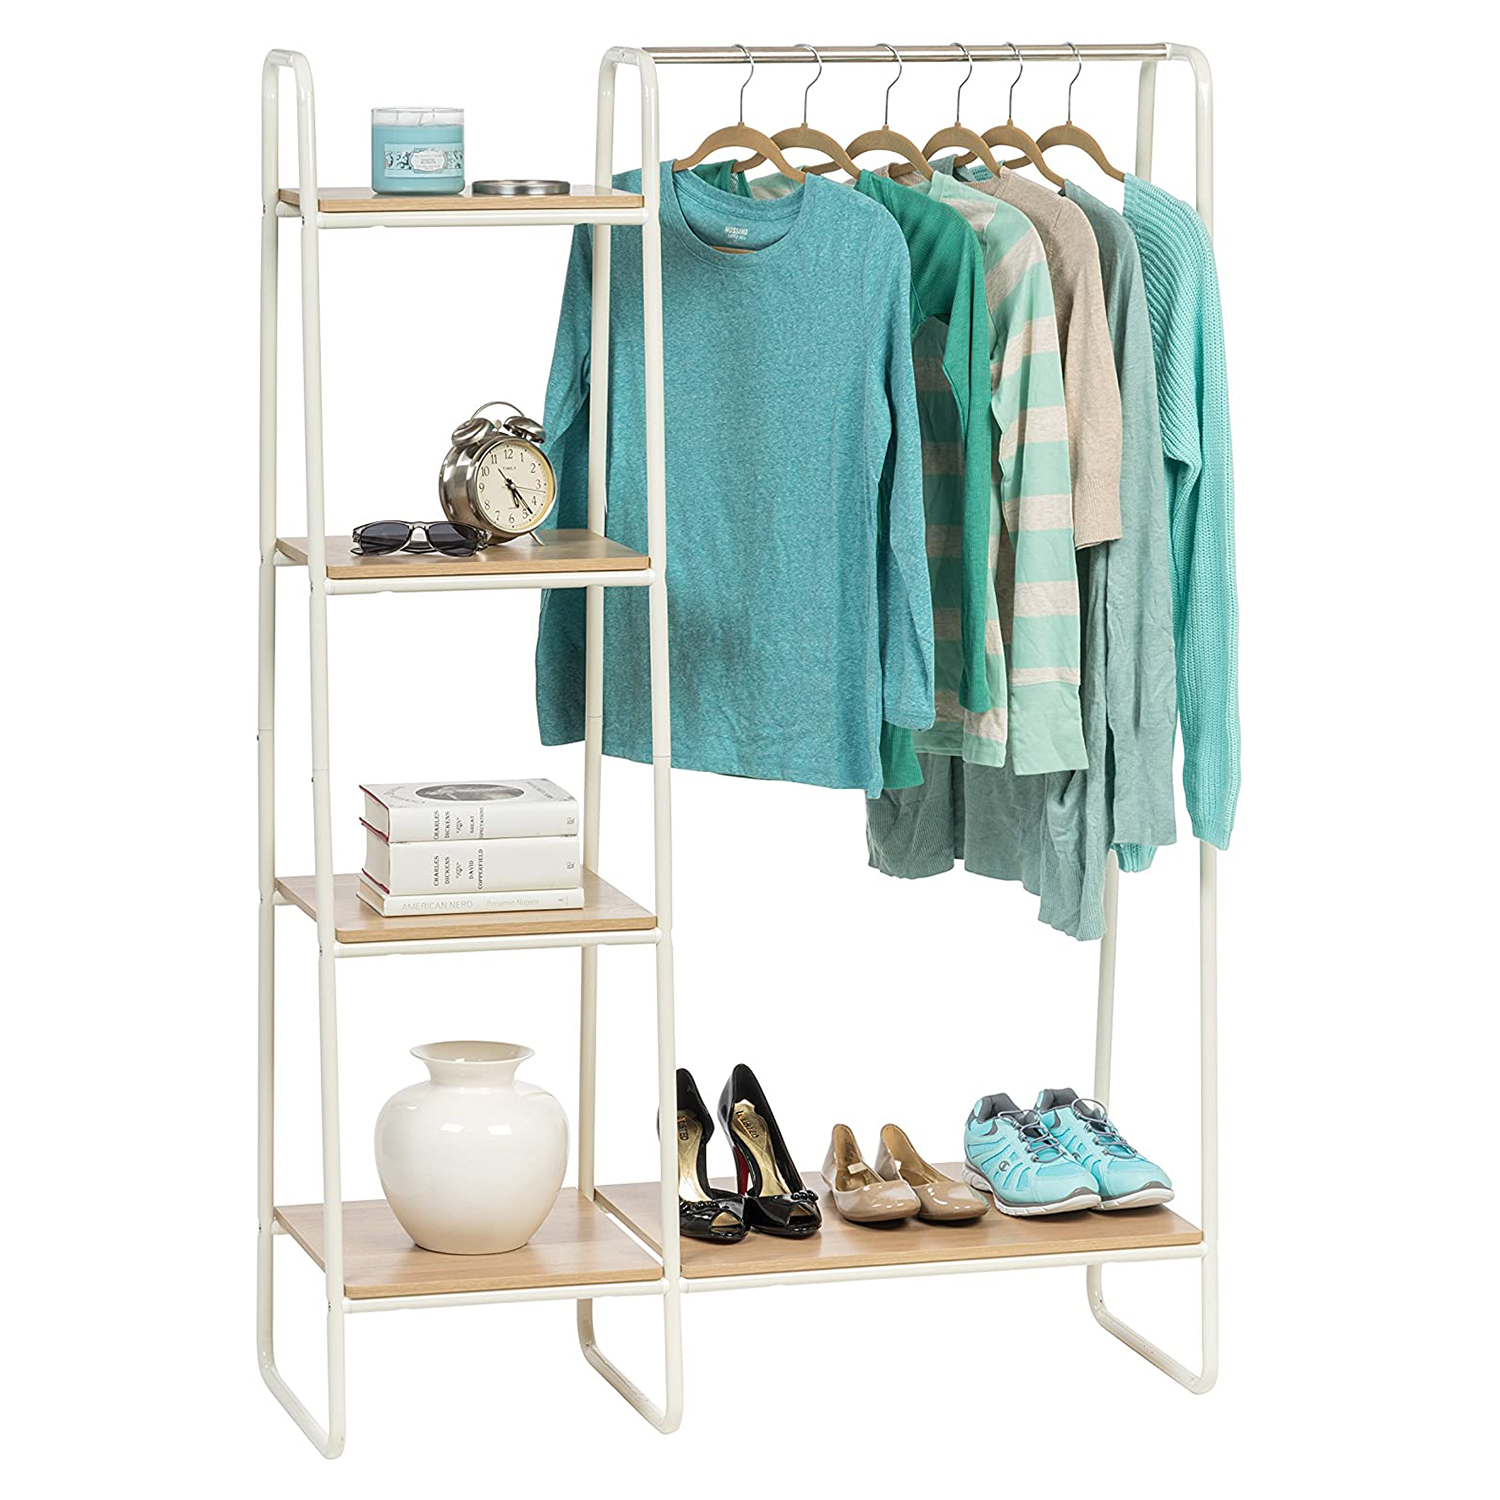 IRIS USA PI-B3 Metal Garment Rack with Shelves